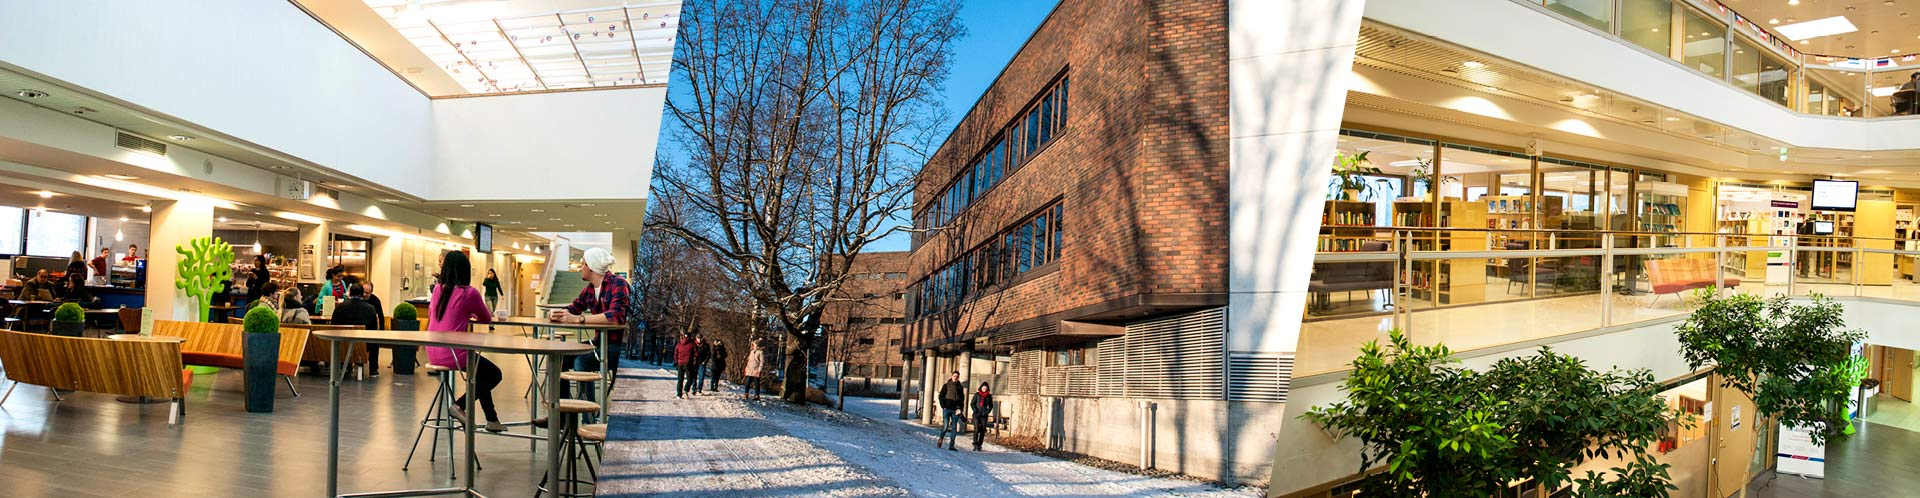 LEPPAVAARA-CAMPUS-LAUREA-UNIVERSITY-OF-APPLIED-SCIENCES-FINLAND.JPG